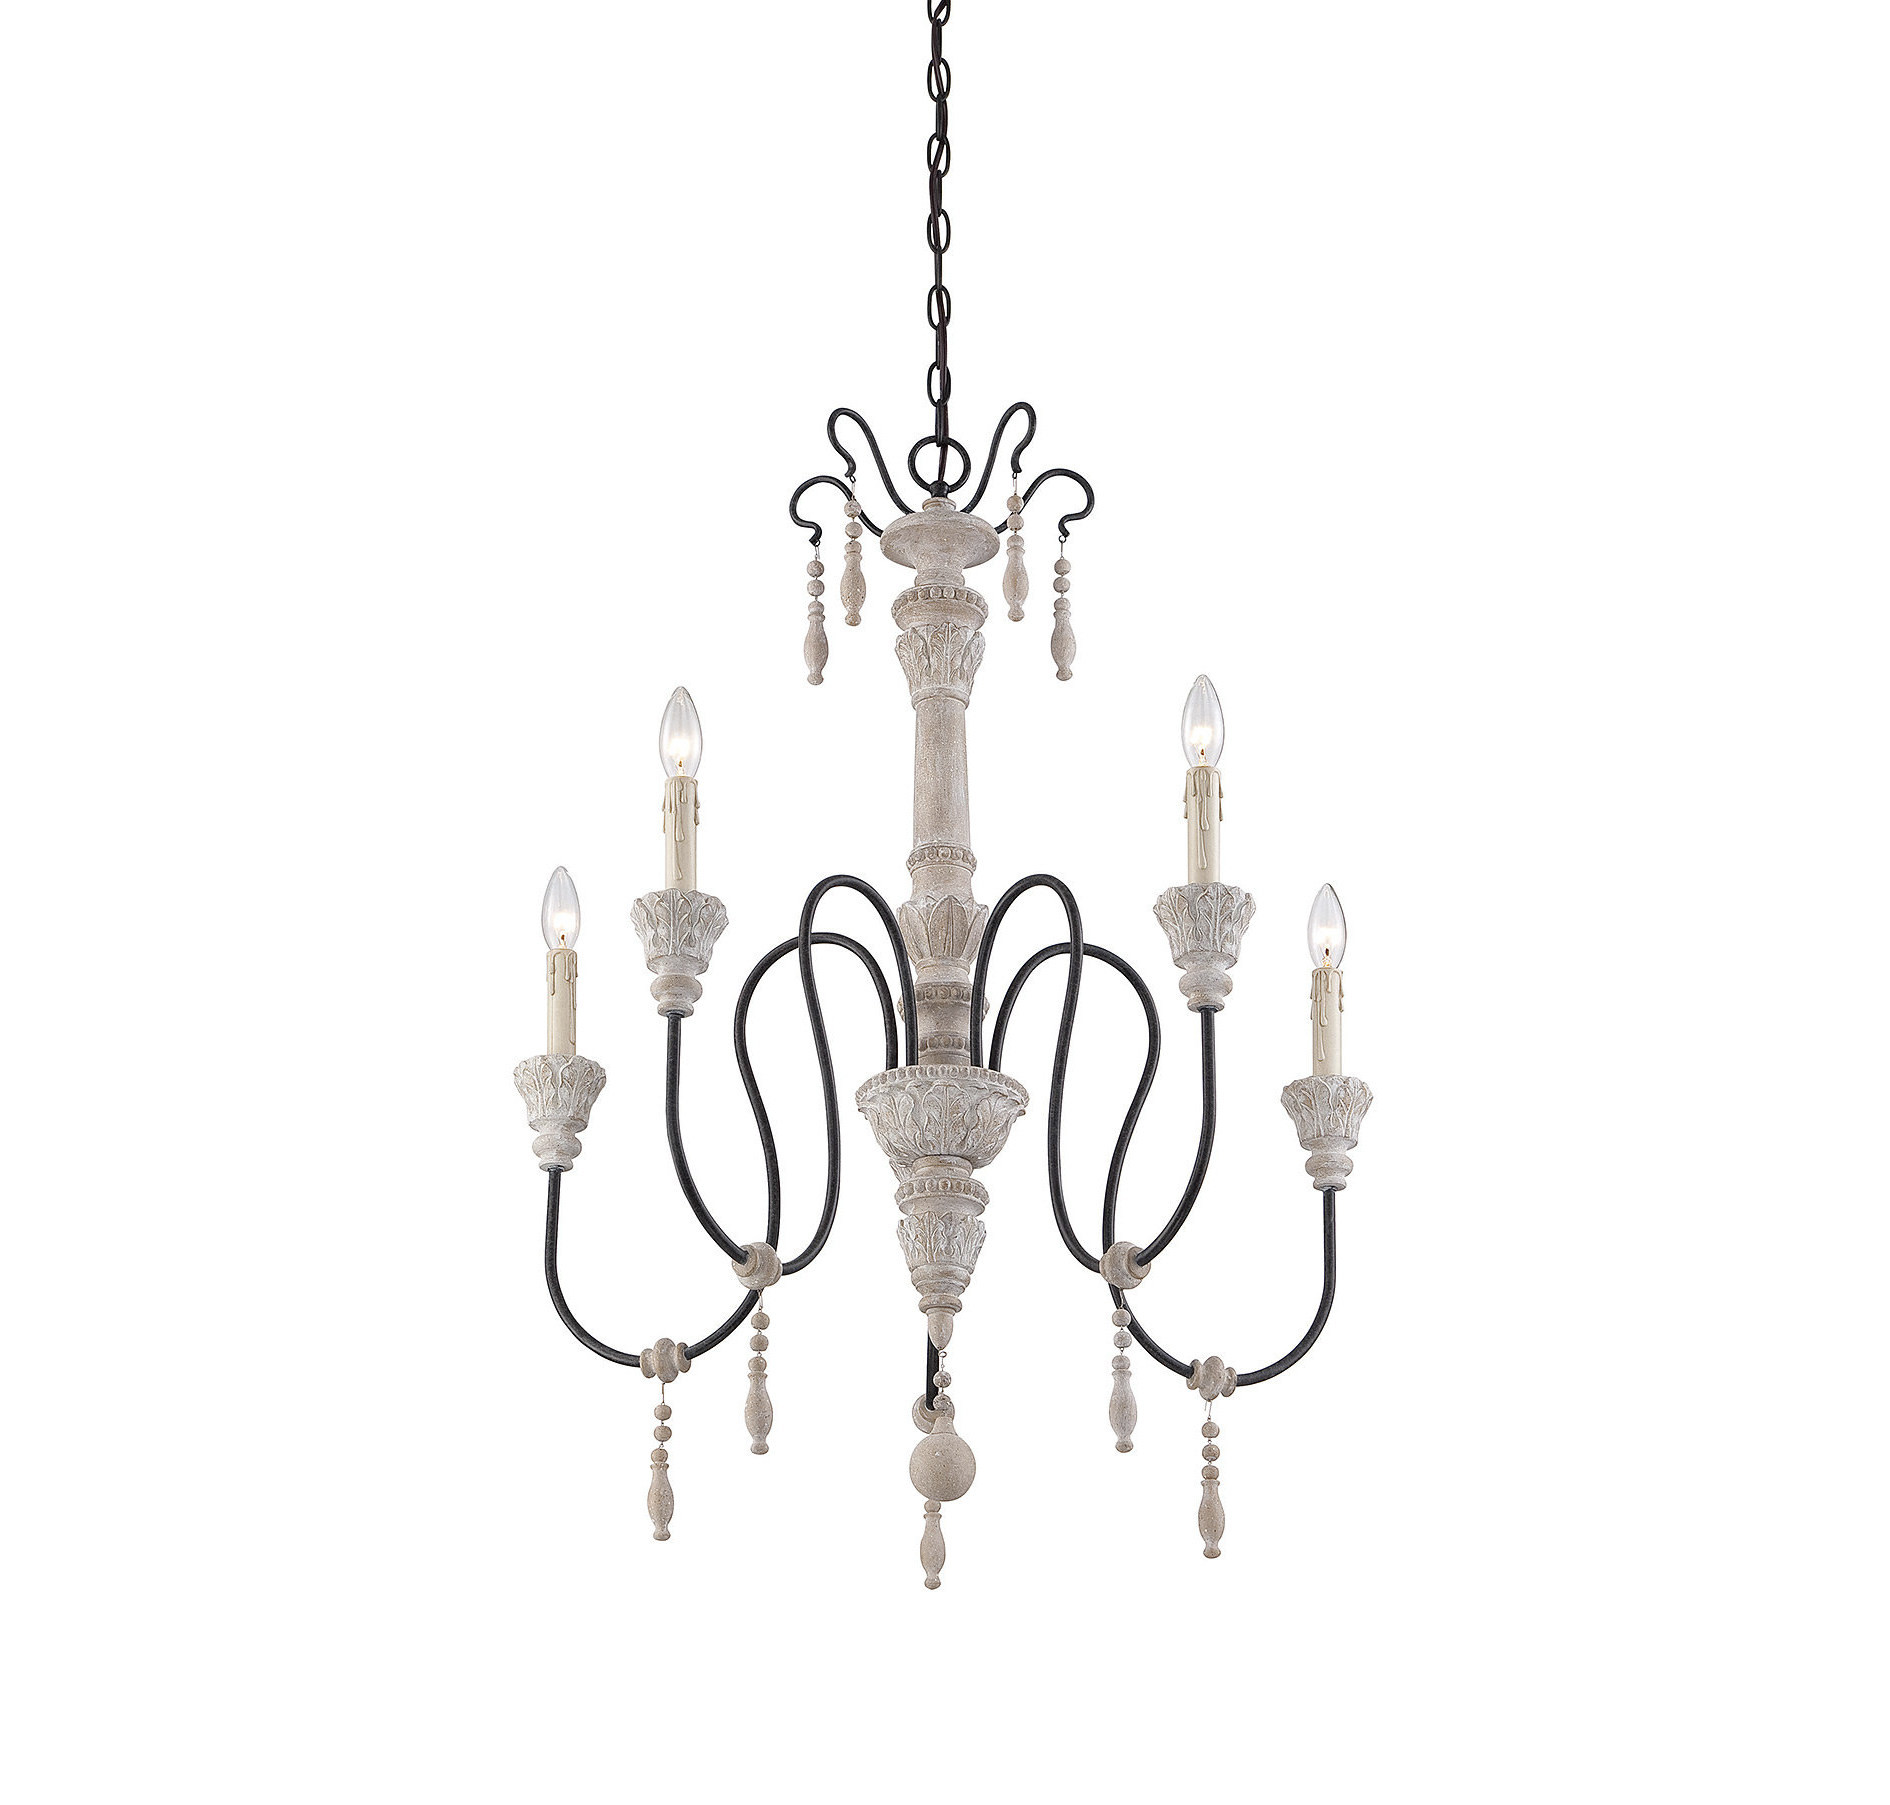 Florentina 5 Light Candle Style Chandeliers Intended For Best And Newest Corneau 5 Light Chandelier (View 6 of 25)